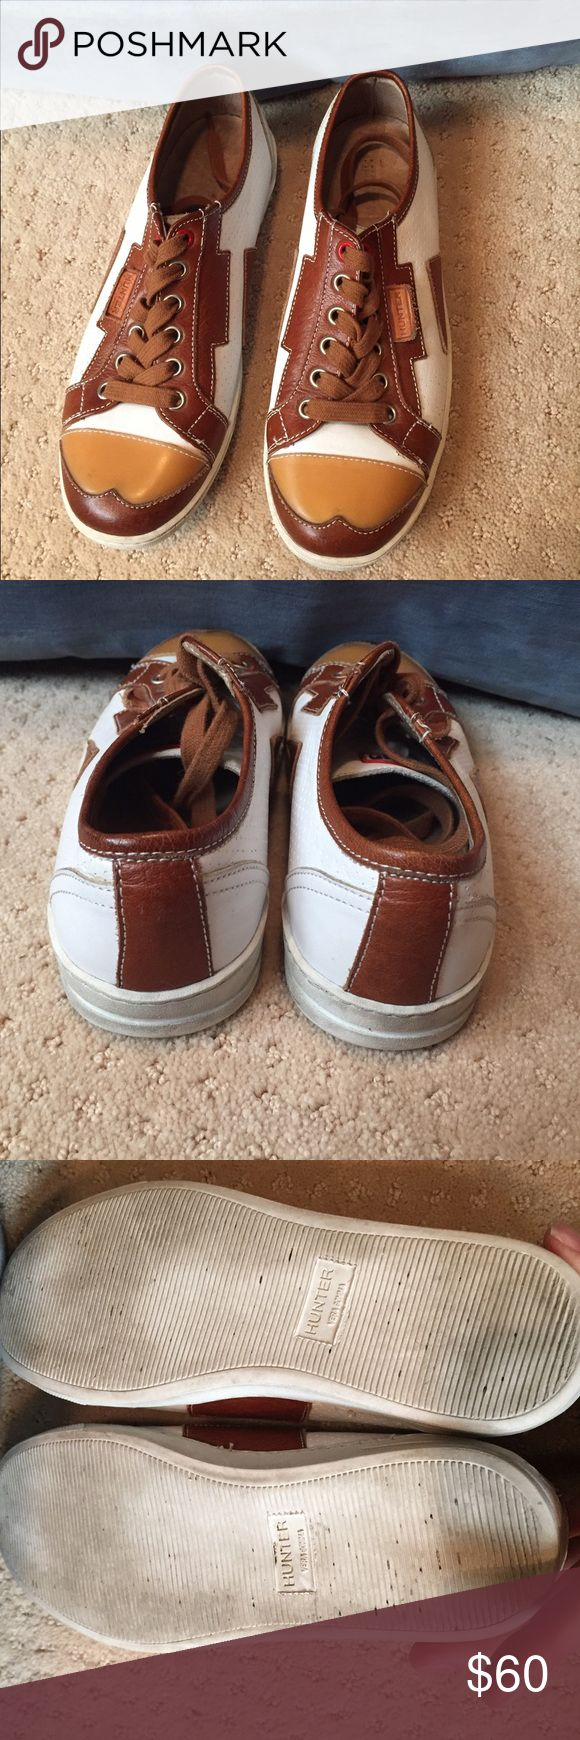 HUNTER Leather Sneakers Adorable leather sneakers made by HUNTER. Ultra soft leather with rubber cap wingtip toe. White and brown leather. Overall very good condition Hunter Shoes Sneakers